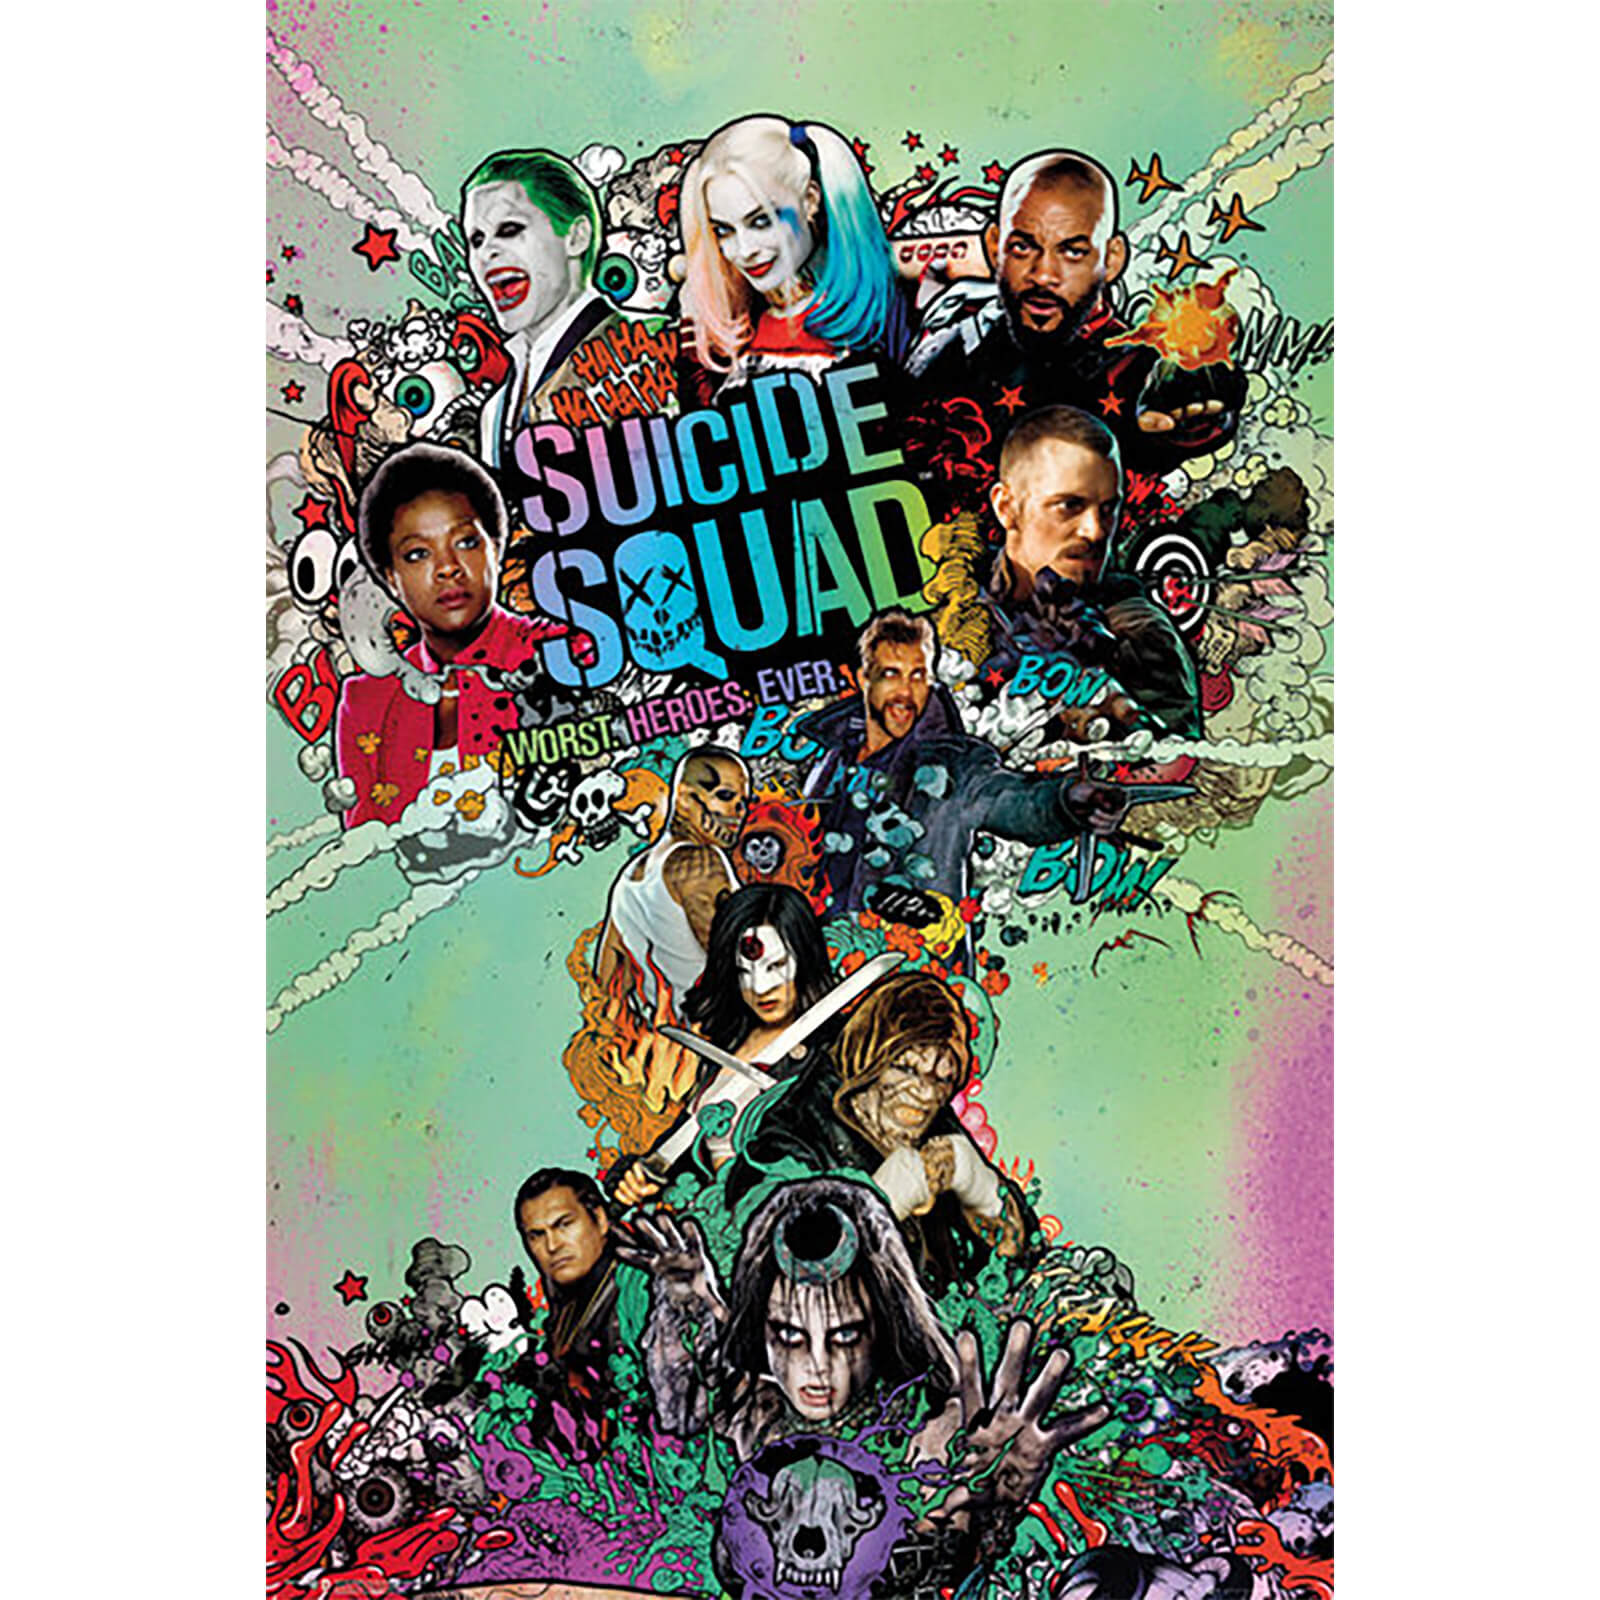 Suicide Squad One Sheet - 61 x 91.5cm Maxi Poster